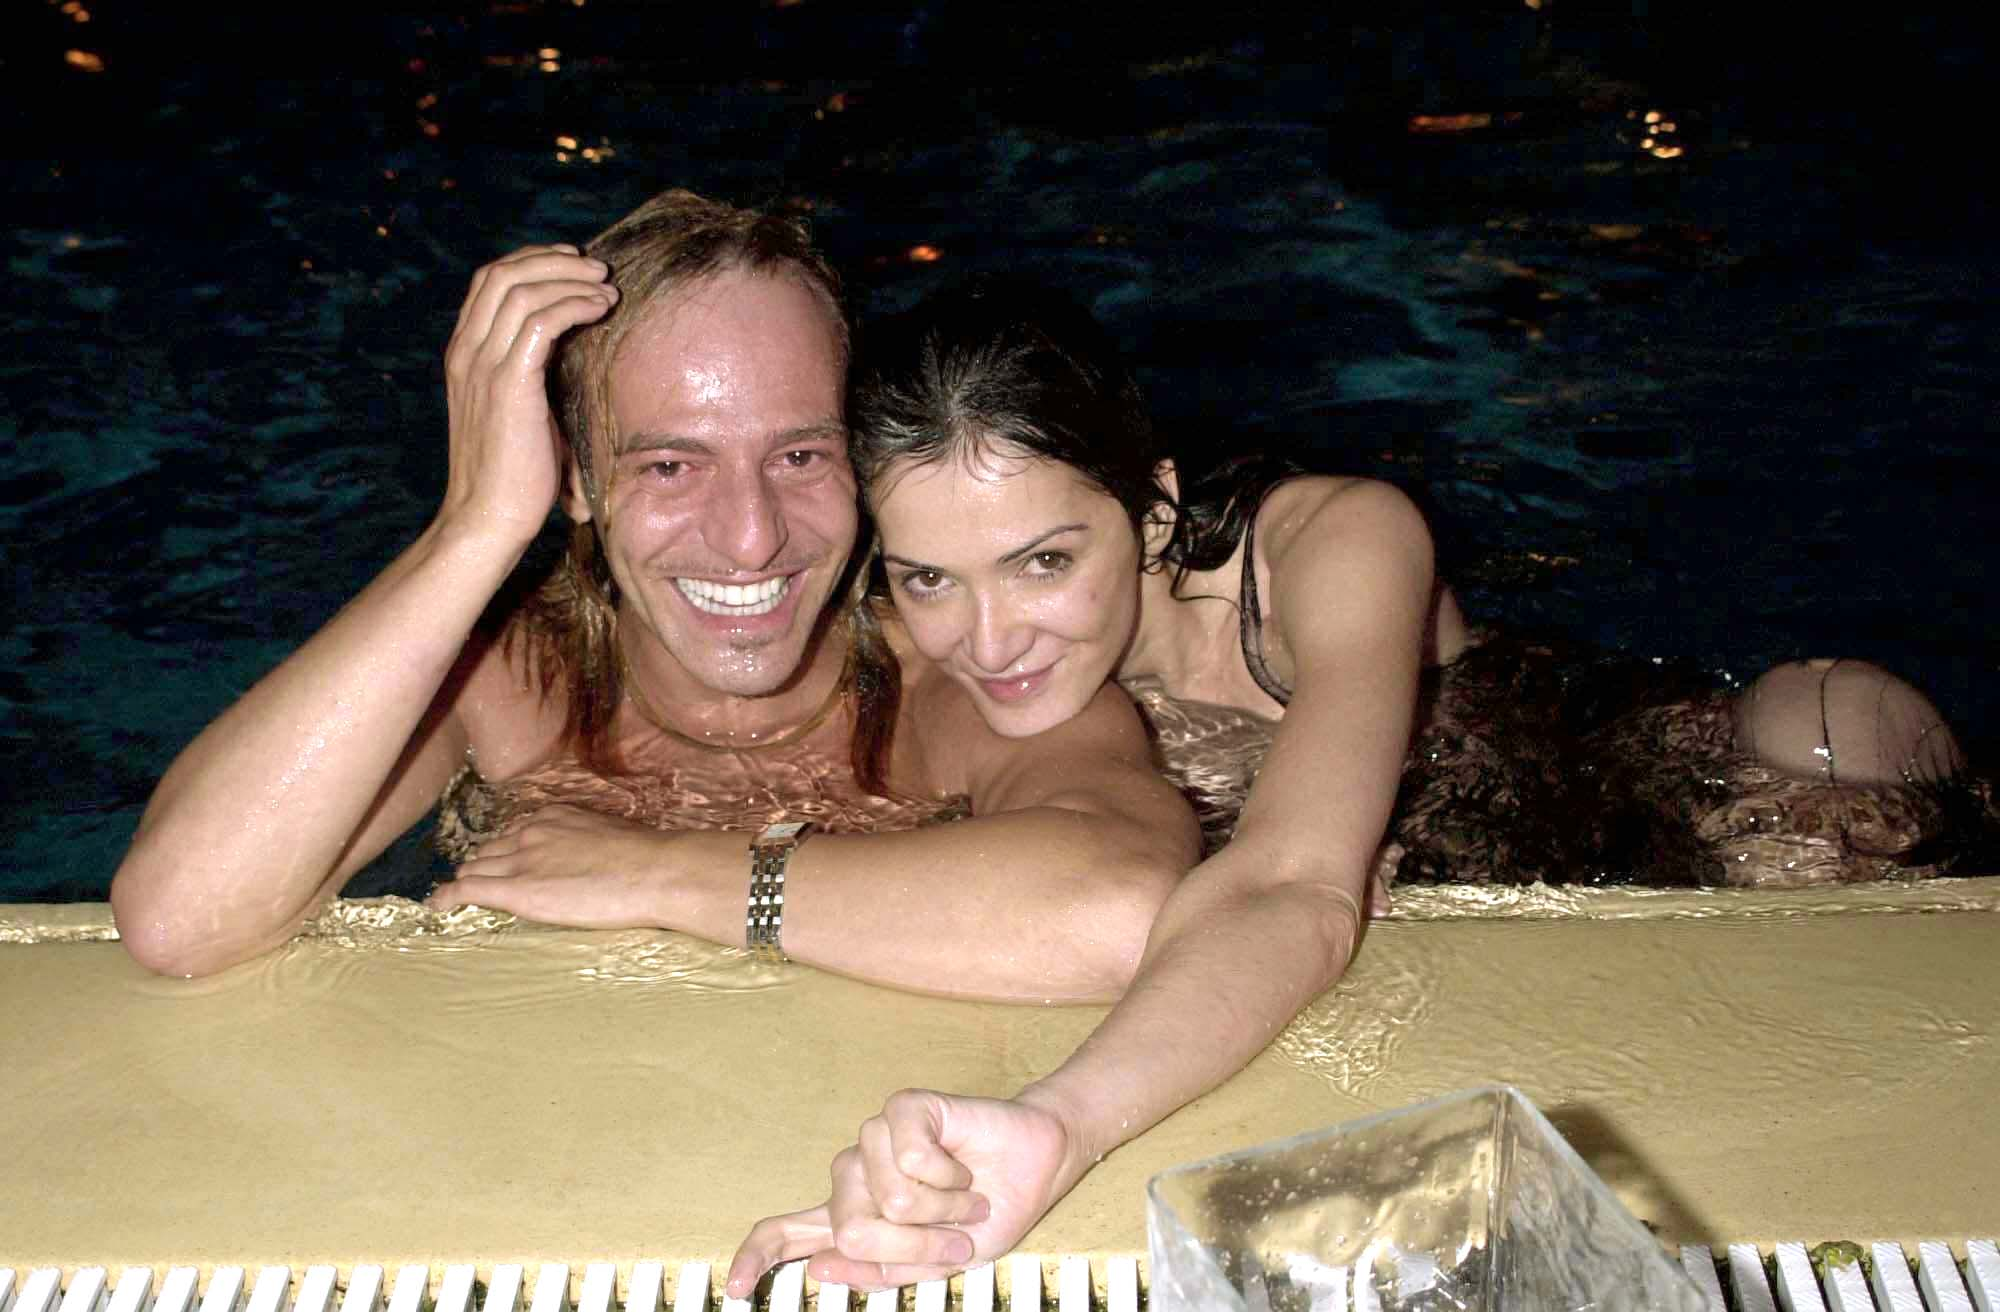 Annabelle Neilson and John Galliano at the Vogue / Laureus Party at Monte Carlo Sports Club, Monaco, 2000